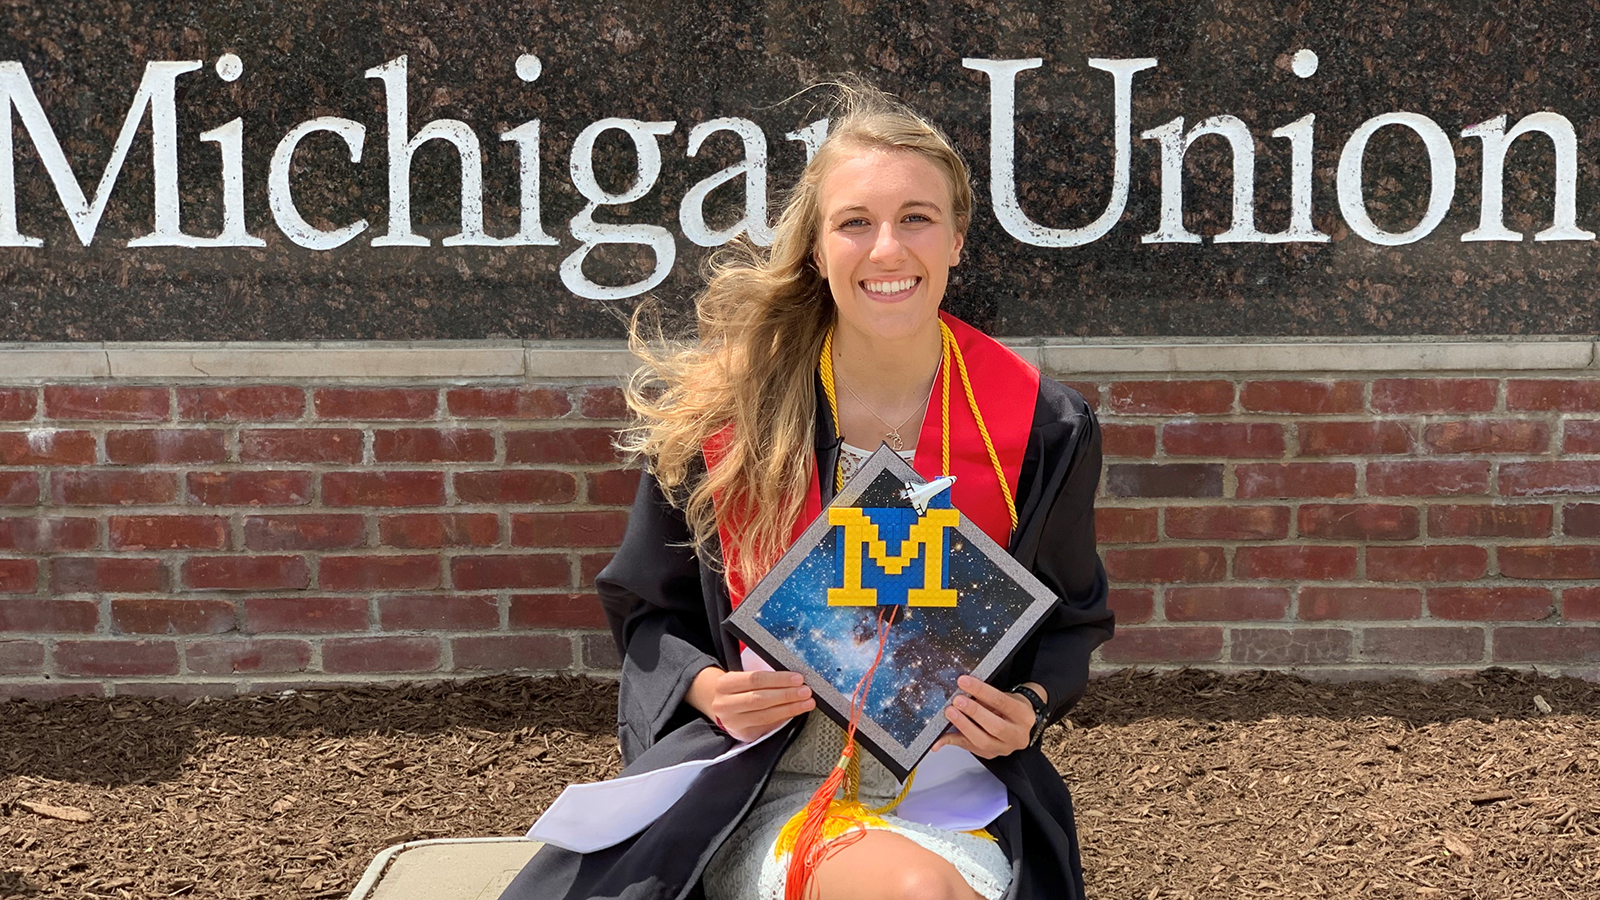 Kaelan Oldani wears her graduation gown and holds her cap while posing in front of a sign that reads 'Michigan Union.'